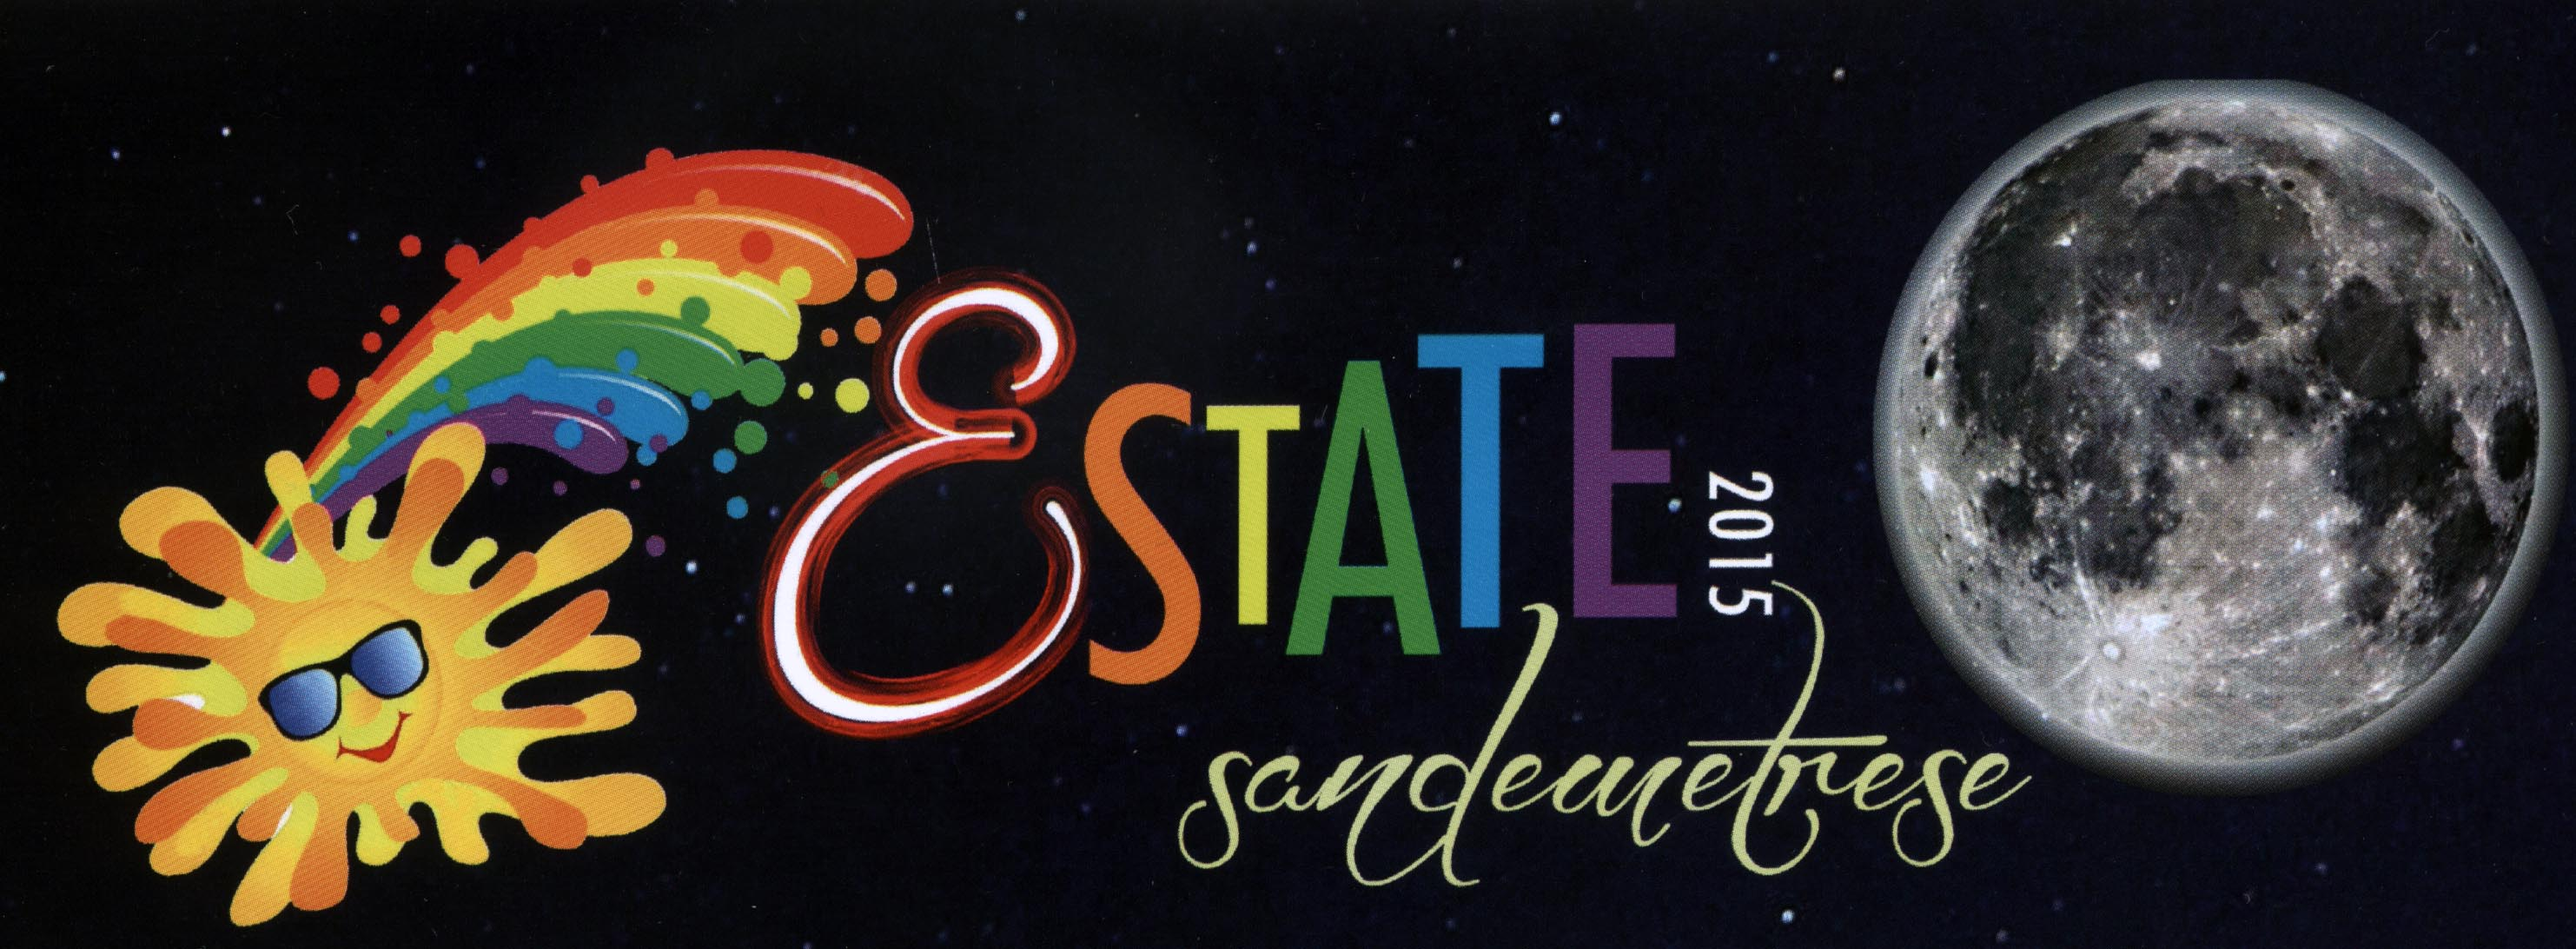 LOGO ESTATE